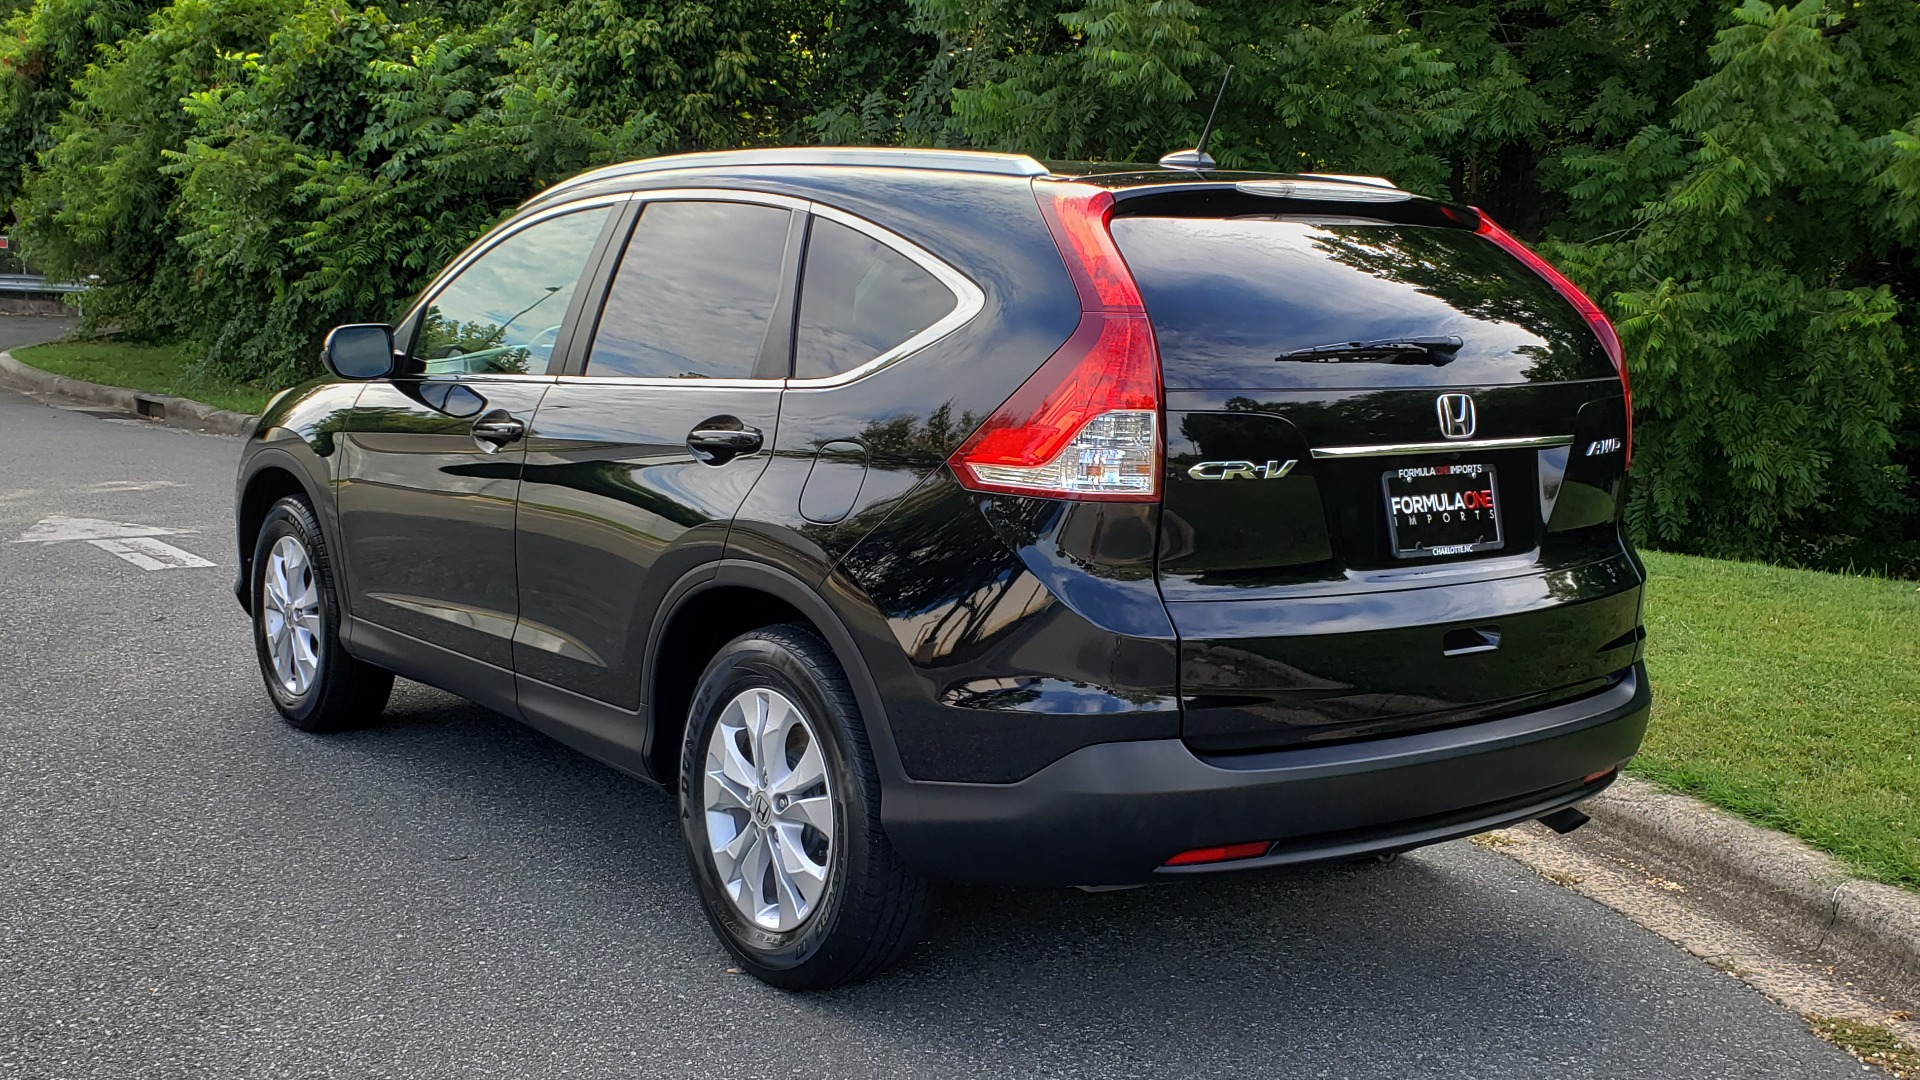 Used 2012 Honda CR-V EX-L / AWD / 5DR / SUNROOF / HEATED SEATS / REARVIEW for sale Sold at Formula Imports in Charlotte NC 28227 3